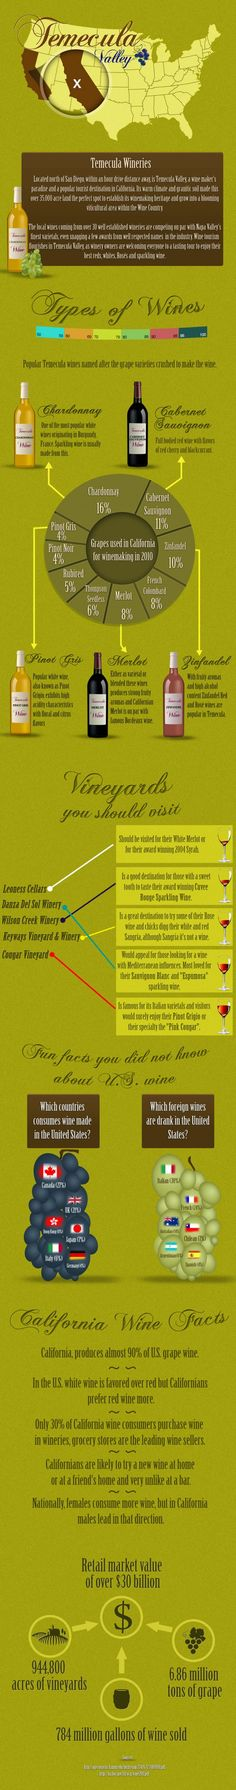 #INFOGRAPHIC: TEMECULA VALLEY AND CALIFORNIA WINE FACTS